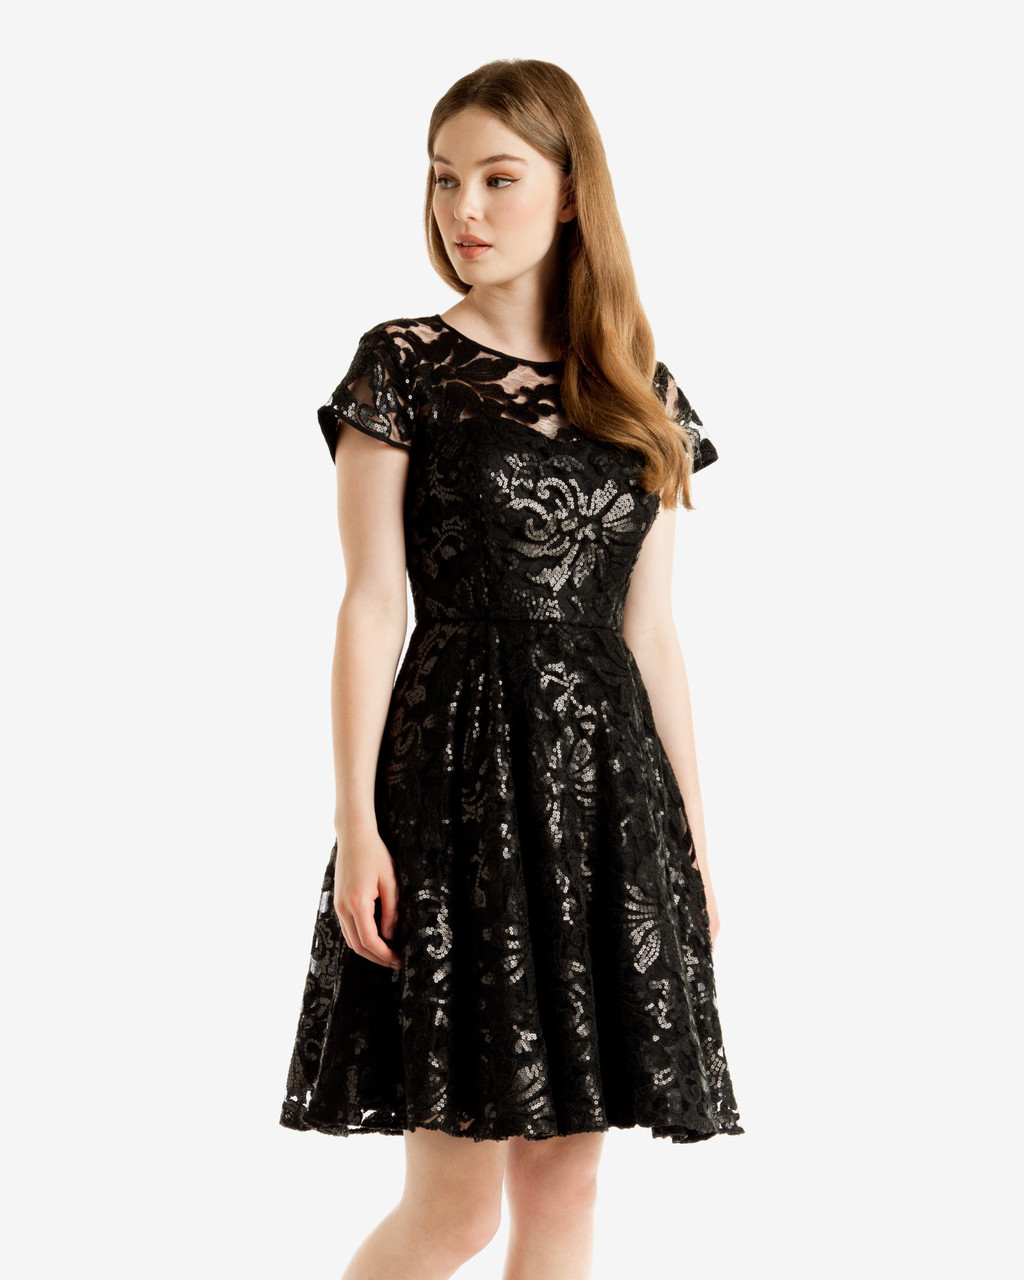 Sequin Floral Lace Dress Black - style: full skirt; predominant colour: black; occasions: evening; length: just above the knee; fit: fitted at waist & bust; fibres: polyester/polyamide - 100%; neckline: crew; sleeve length: short sleeve; sleeve style: standard; texture group: lace; pattern type: fabric; pattern: patterned/print; season: a/w 2016; wardrobe: event